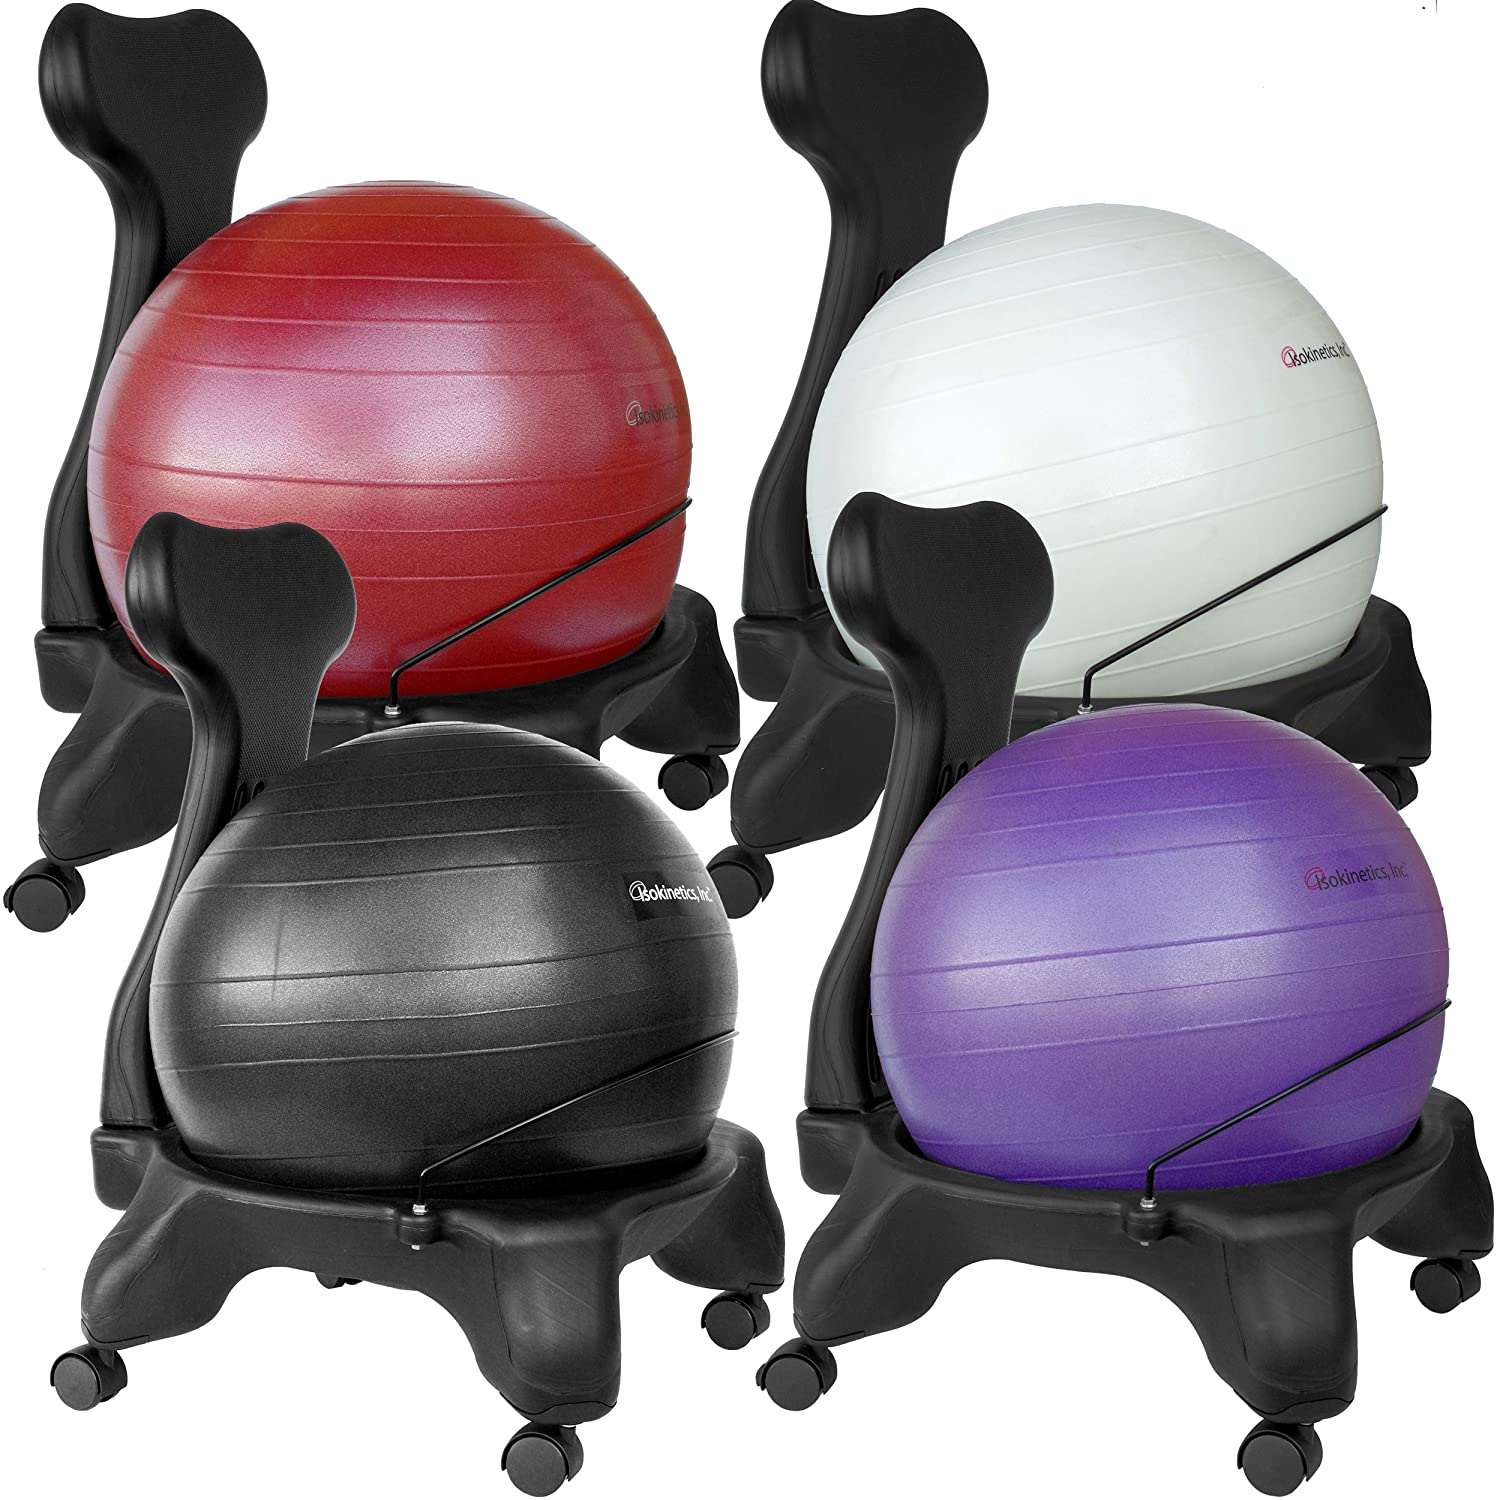 yoga ball chair exercises plastic with metal legs exercise office  fel7